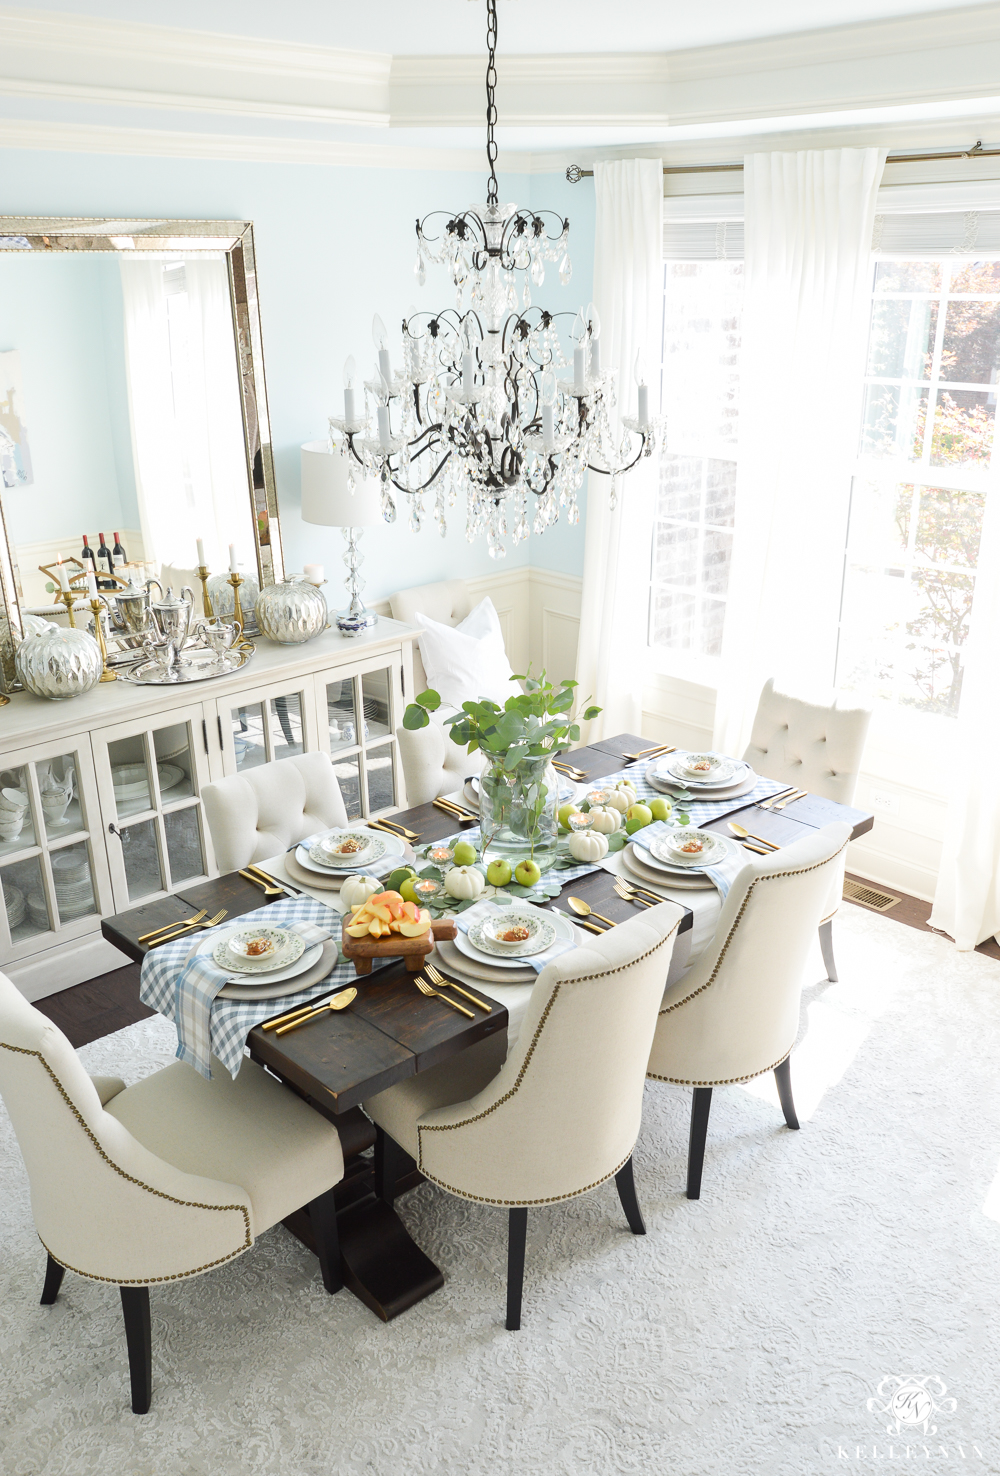 2017 Fall Home Tour With Yellow And Orange Leaves  Dining Room With  Chandelier